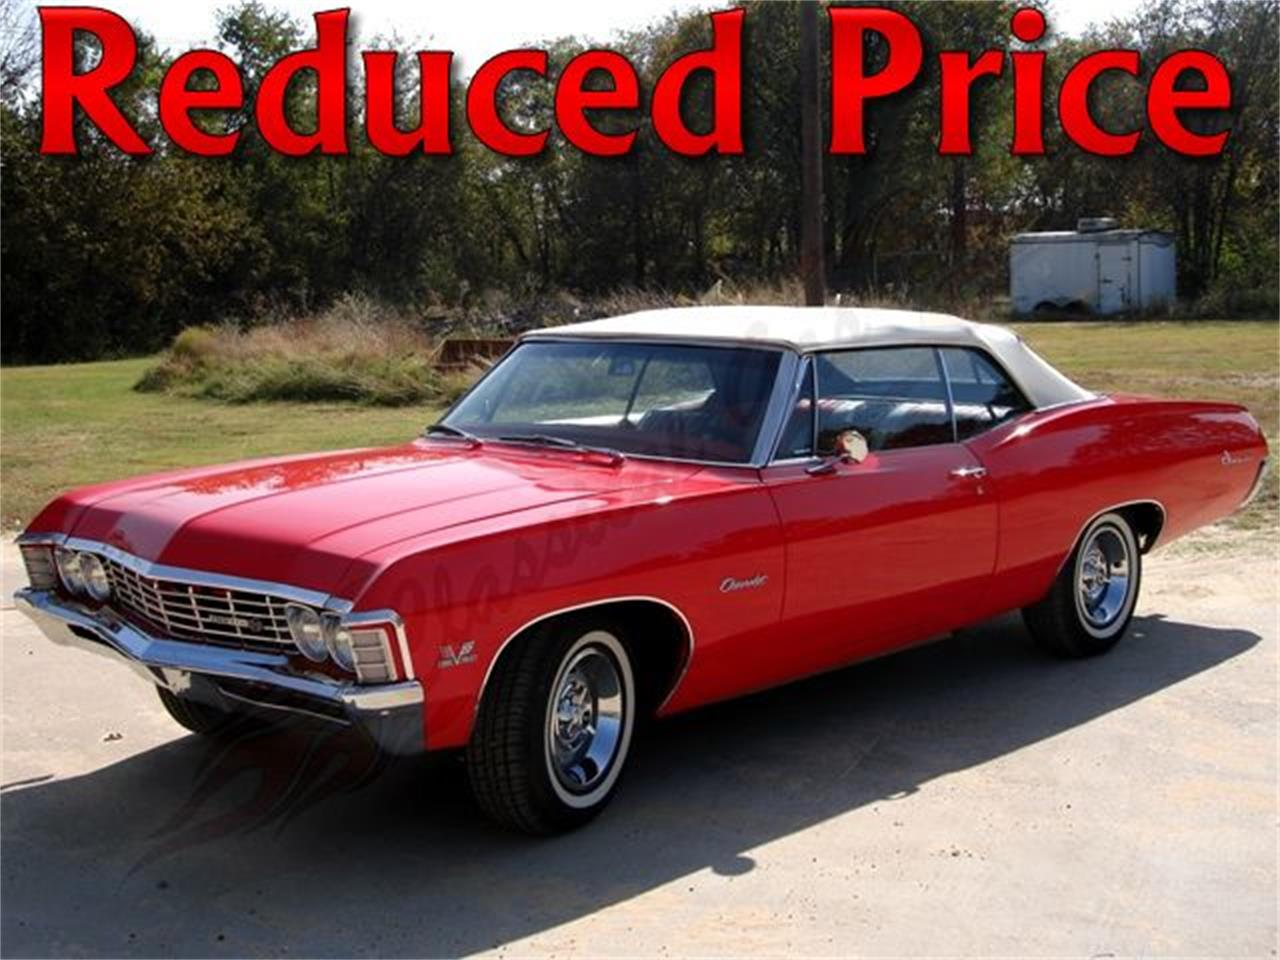 1967 Chevrolet Impala Ss For Sale Classiccars Com Cc